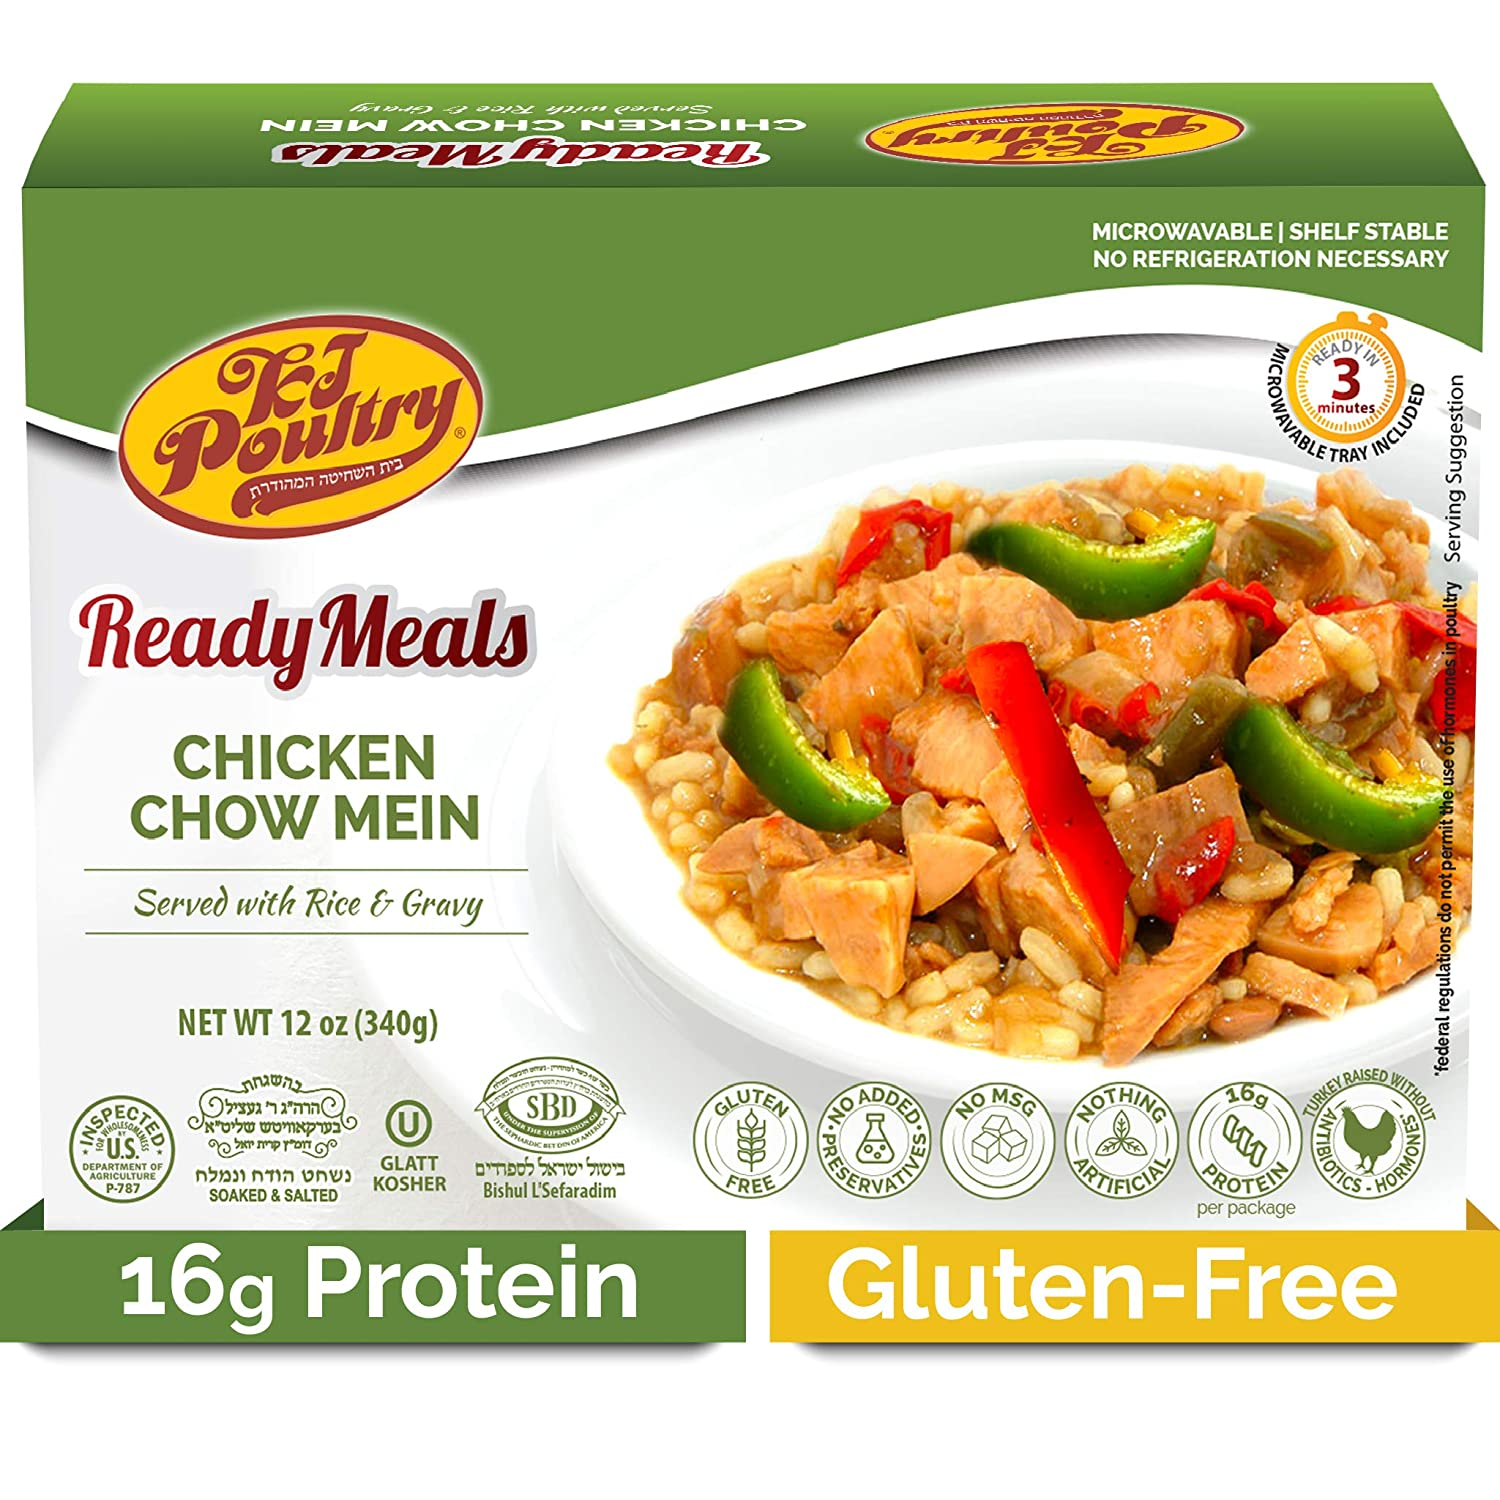 Kosher MRE Meat Meals Ready to Eat, Gluten Free Chicken Chow Mein (1 Pack) - Prepared Entree Fully Cooked, Shelf Stable Microwave Dinner – Travel, Military, Camping, Emergency Survival Protein Food